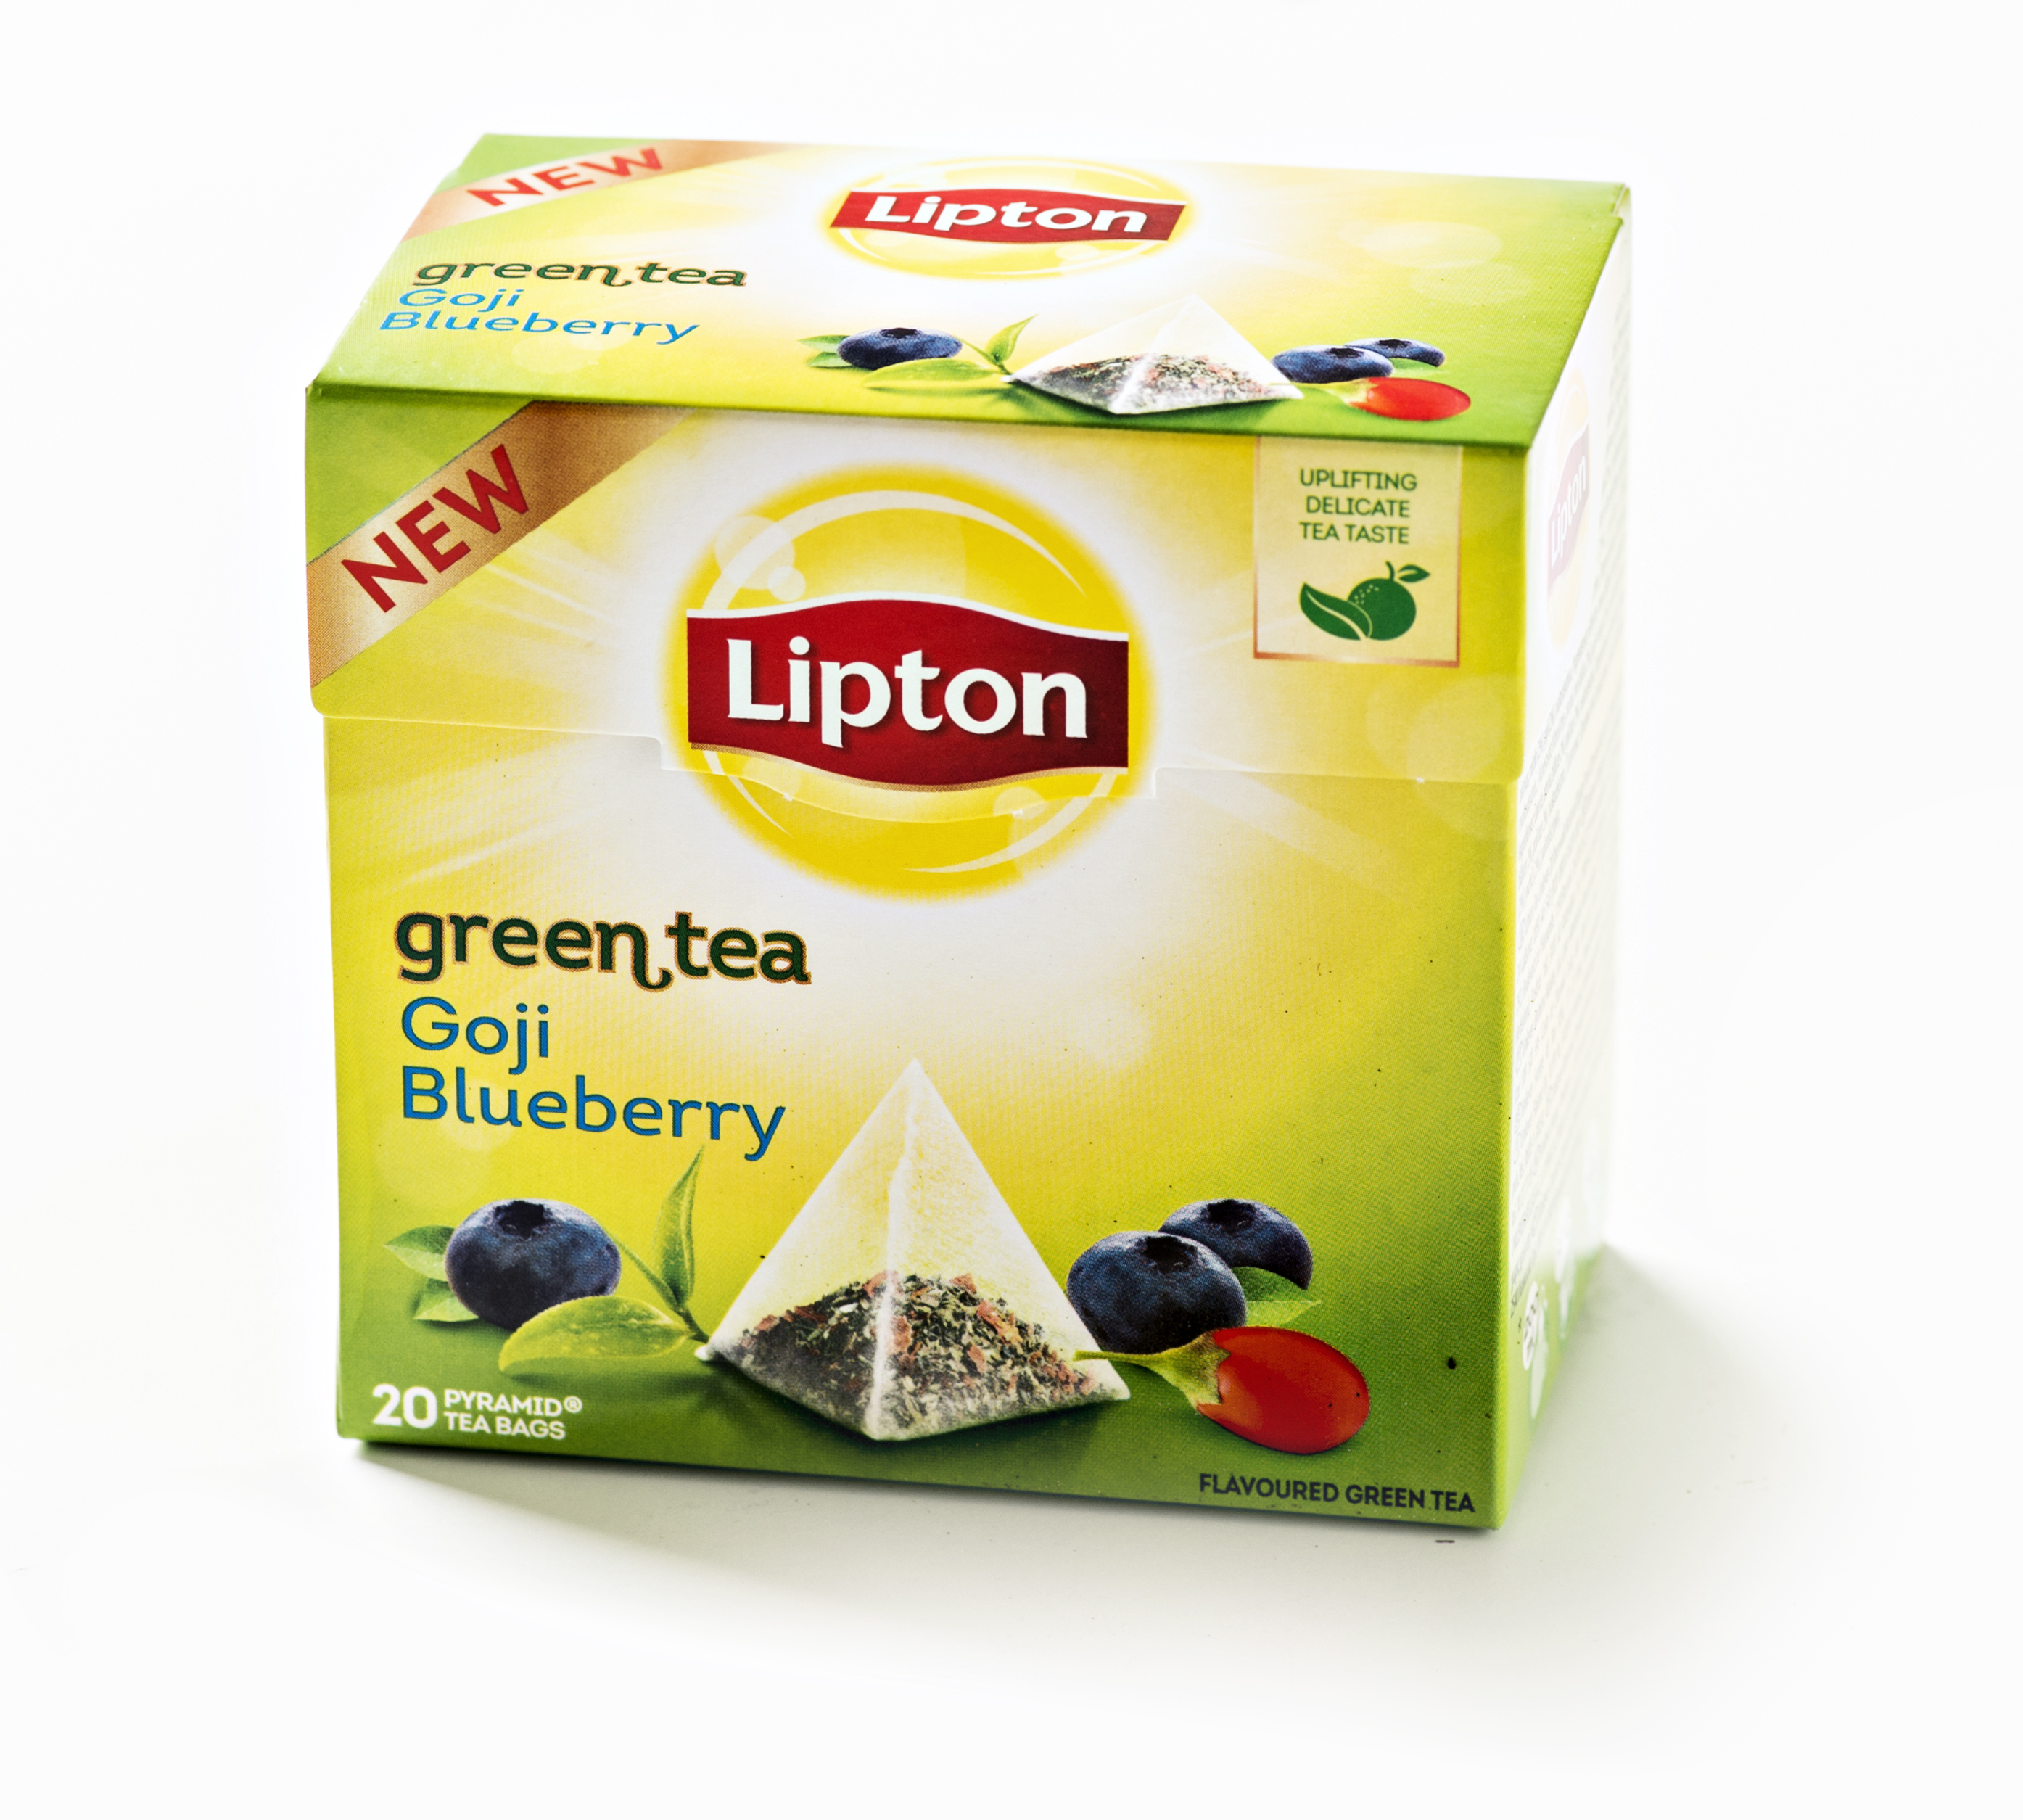 Lipton Goji Blueberry